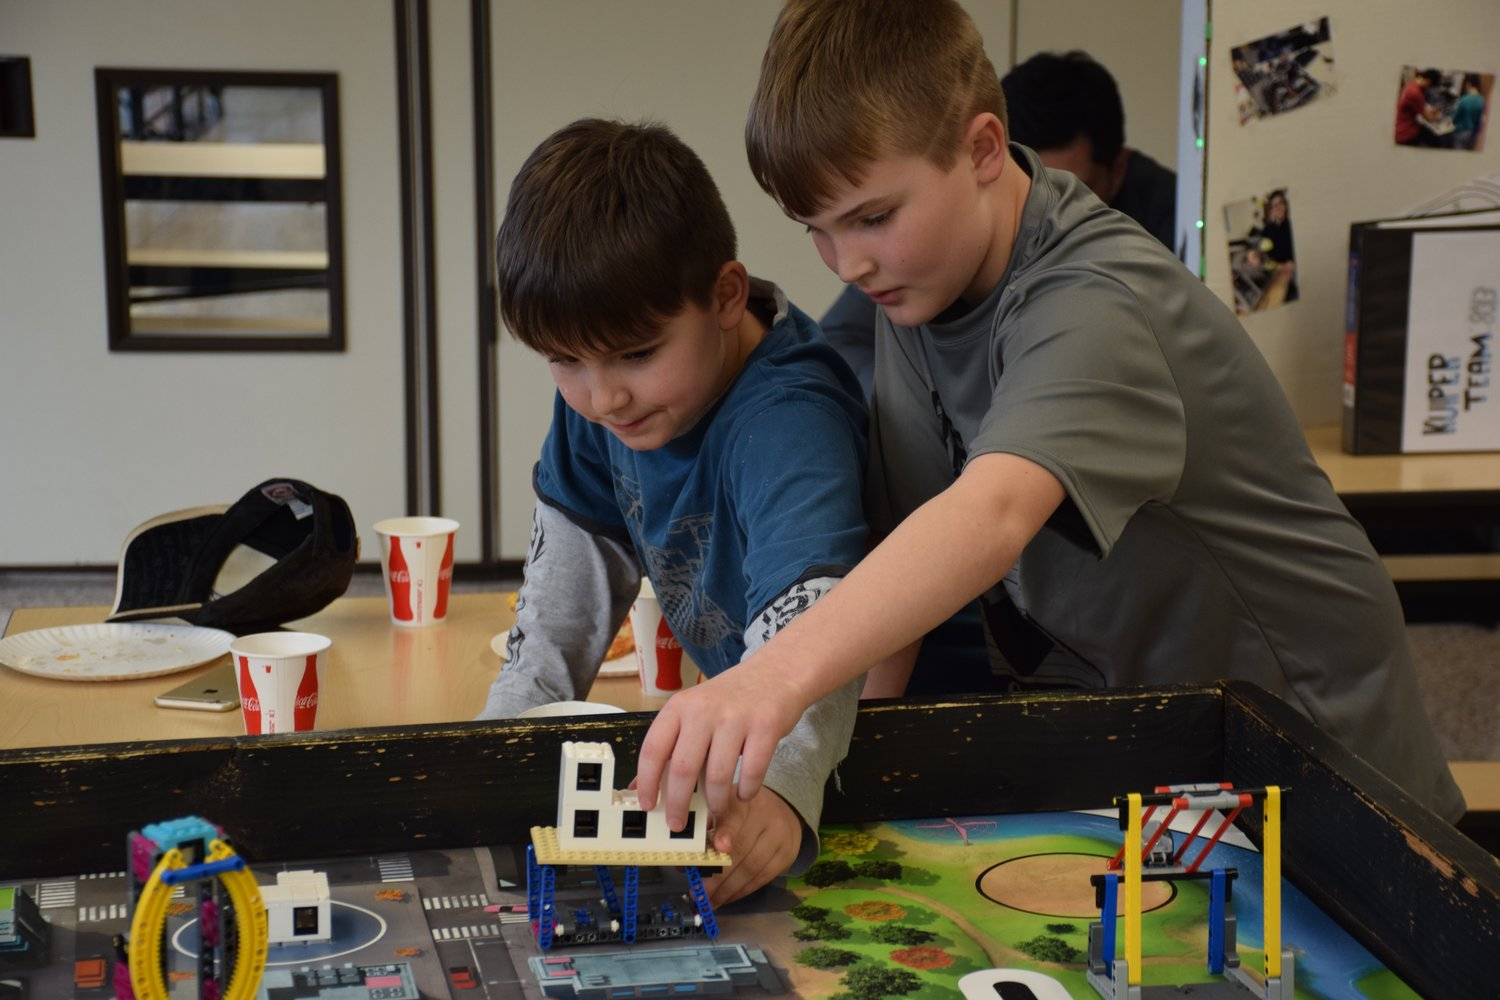 Fifth-graders Liam Reilly, left, and CJ McKenzie shared their Lego project with other students at Locust Valley Middle School.